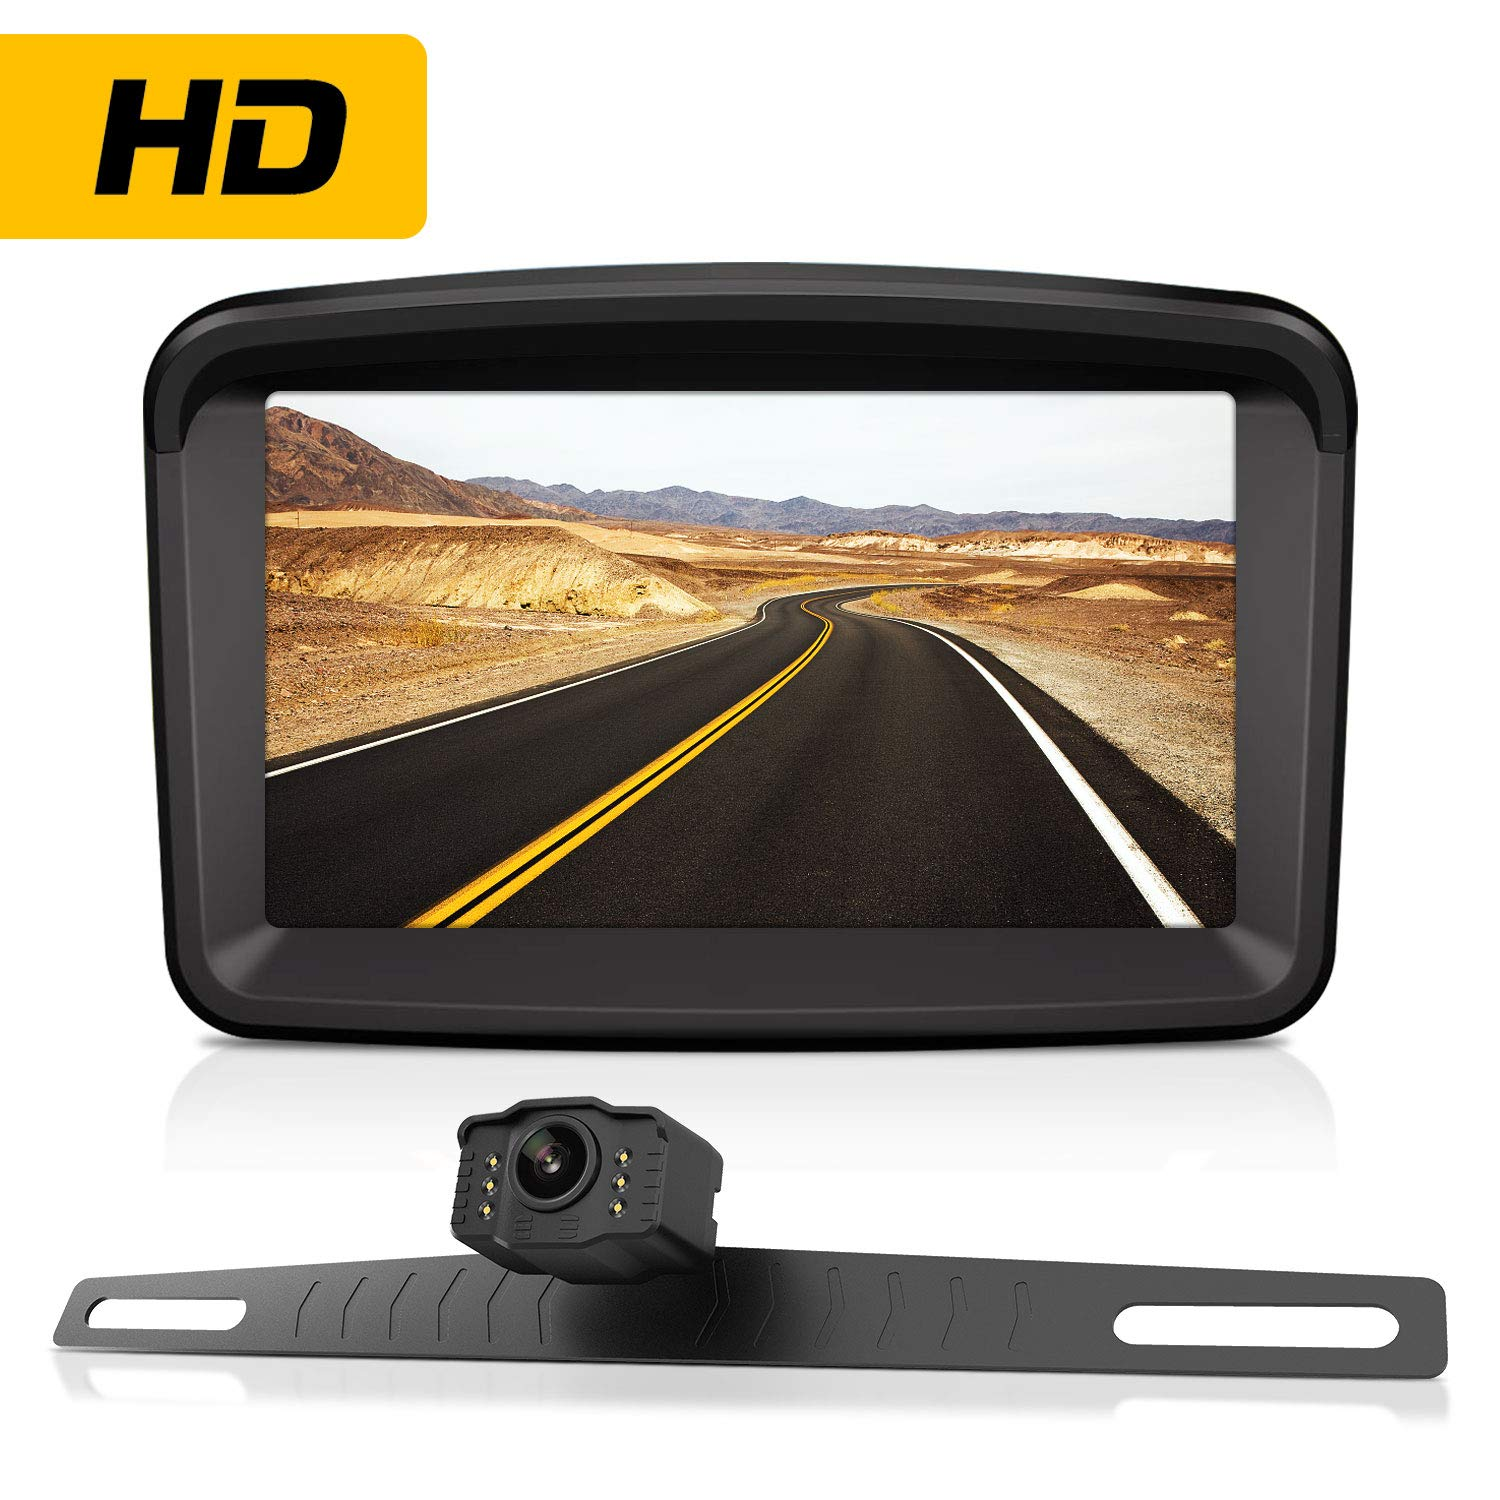 Backup Camera with Monitor License Plate Mounted Digital Reversing observation Camera Night Vision Waterproof Rear View for 5'' LCD Monitor be Used for Safety Driving of Vans,Trucks,Camping Cars,RVs,et by Xroose